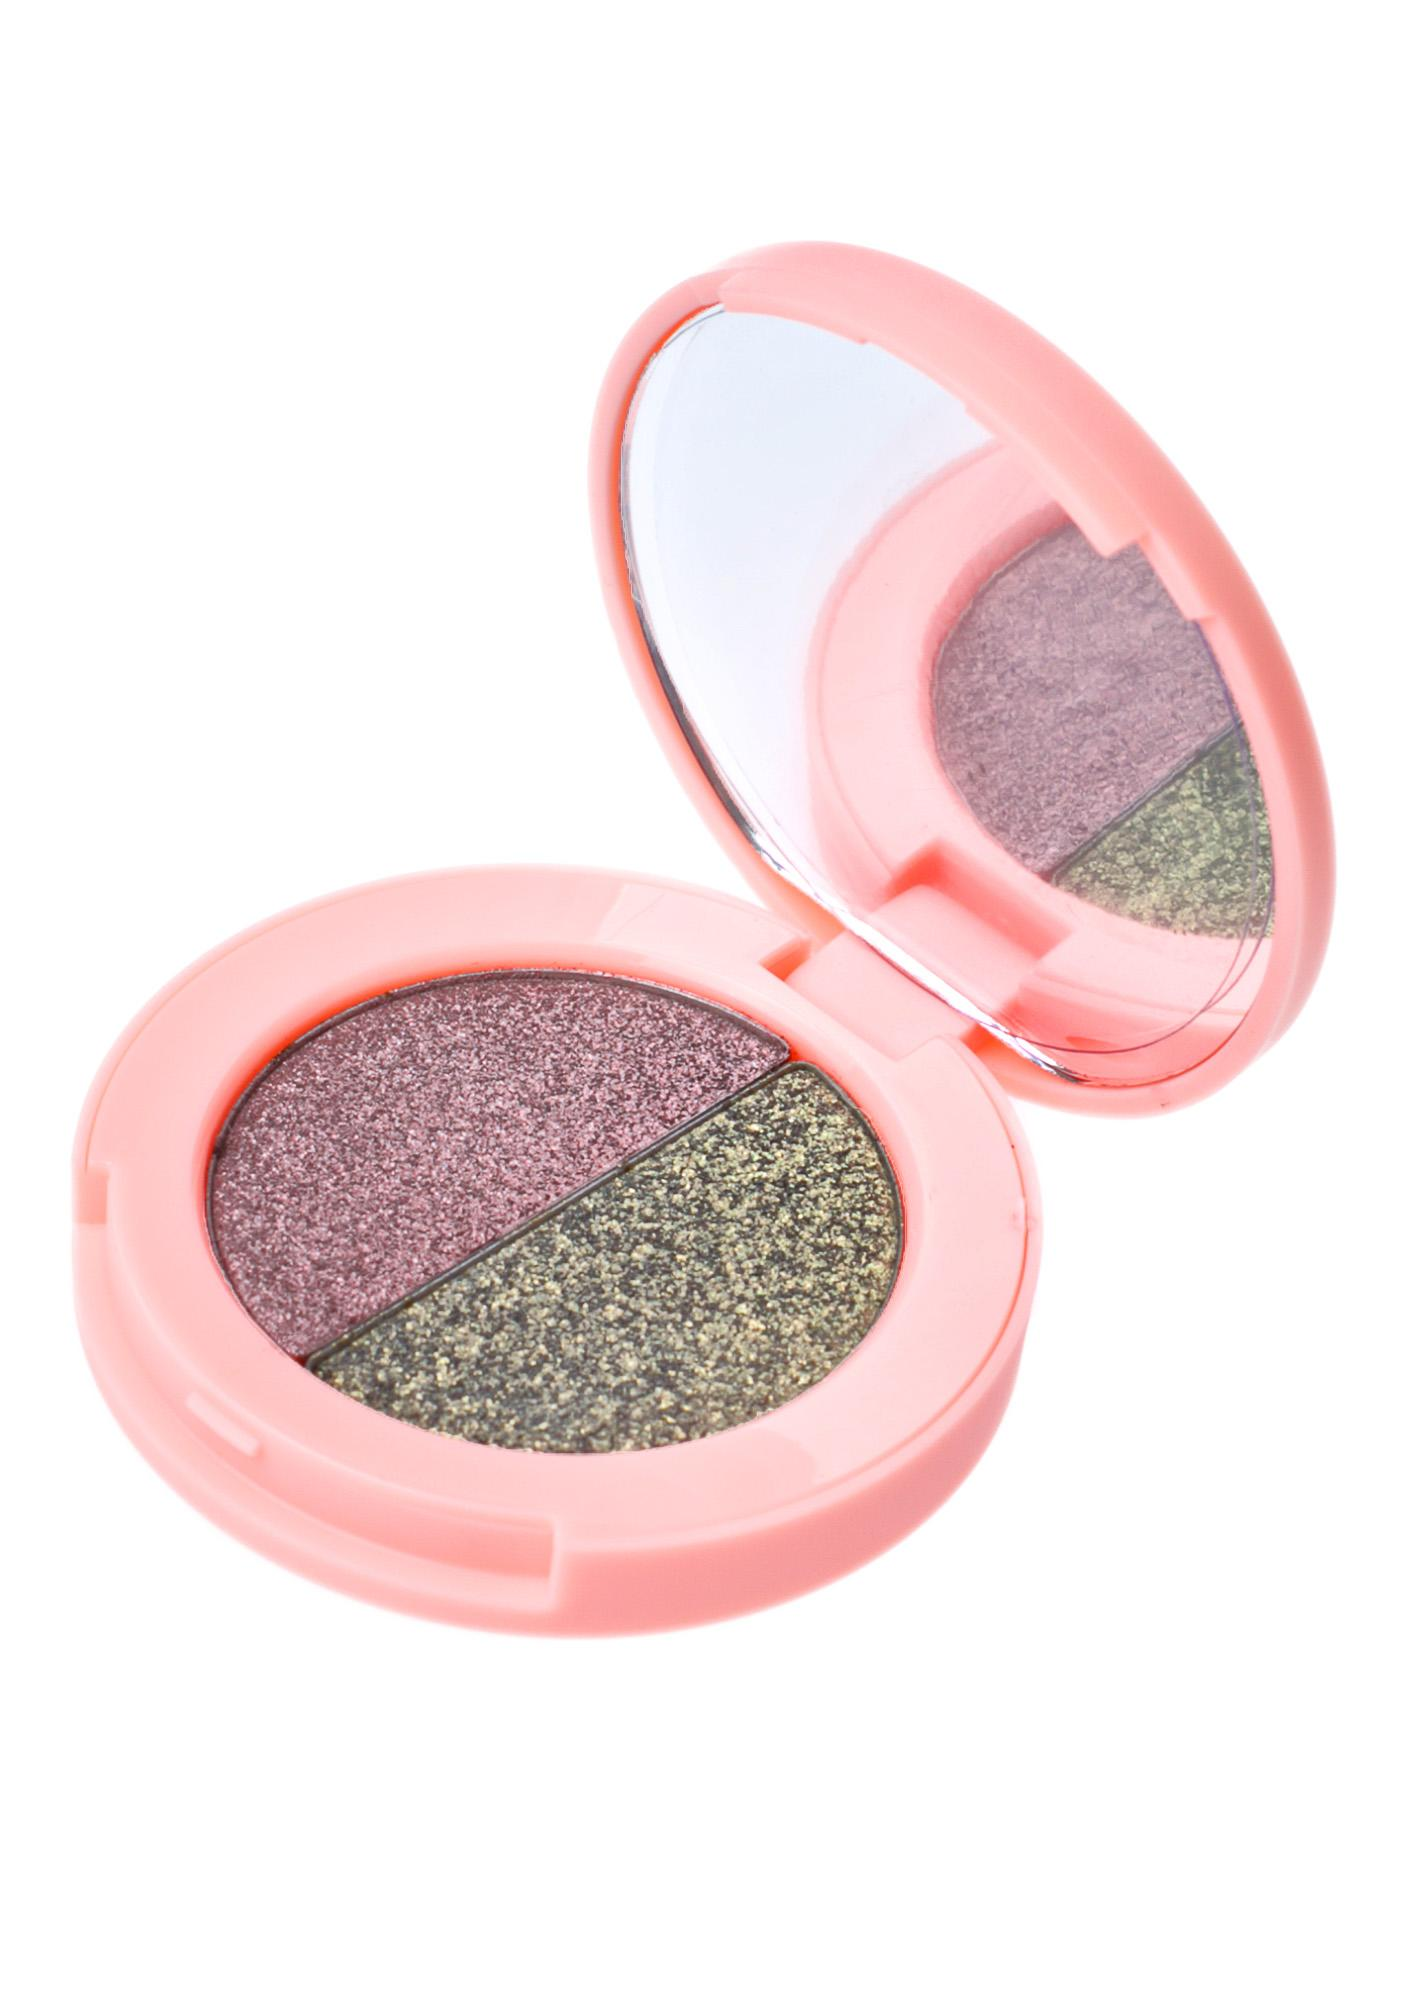 Lime Crime Electric/Barbarella Superfoil Eyeshadow Duo